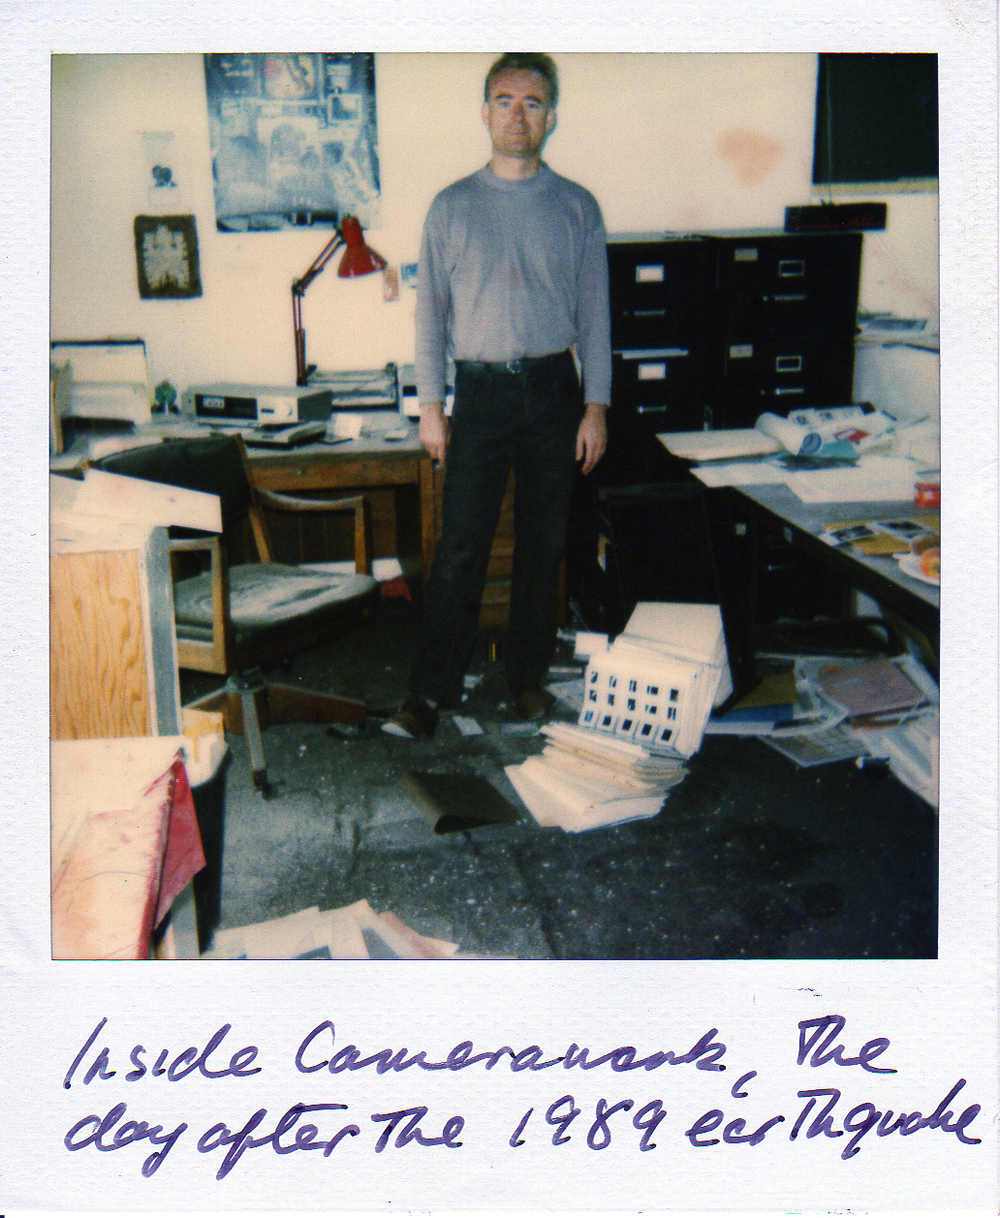 SF Camerawork, 1989: Our office the day after the earthquake